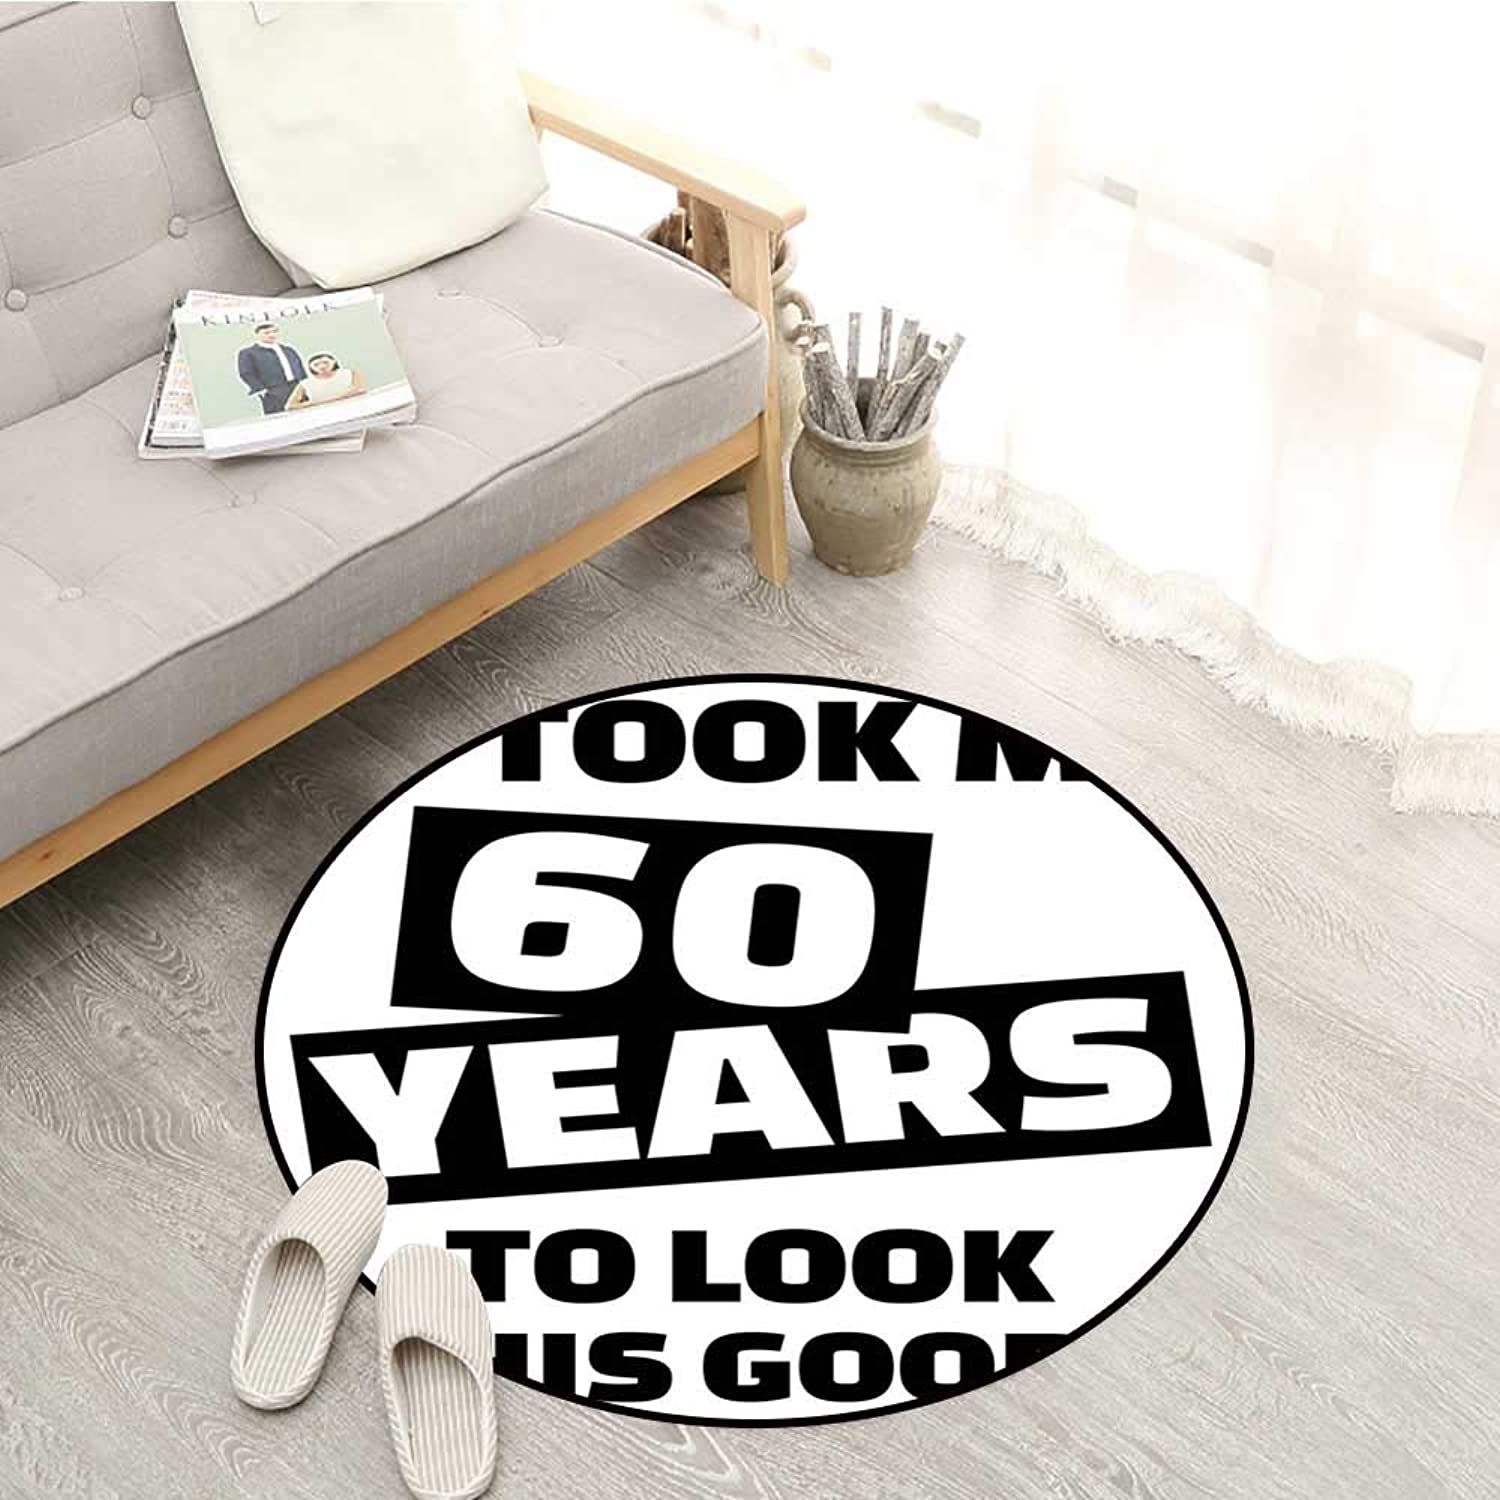 60th Birthday Skid-Resistant Rugs It Took Me 60 Years Party Quote Slogan Admiration Theme Monochrome Image Sofa Coffee Table Mat 3'11  Black and White